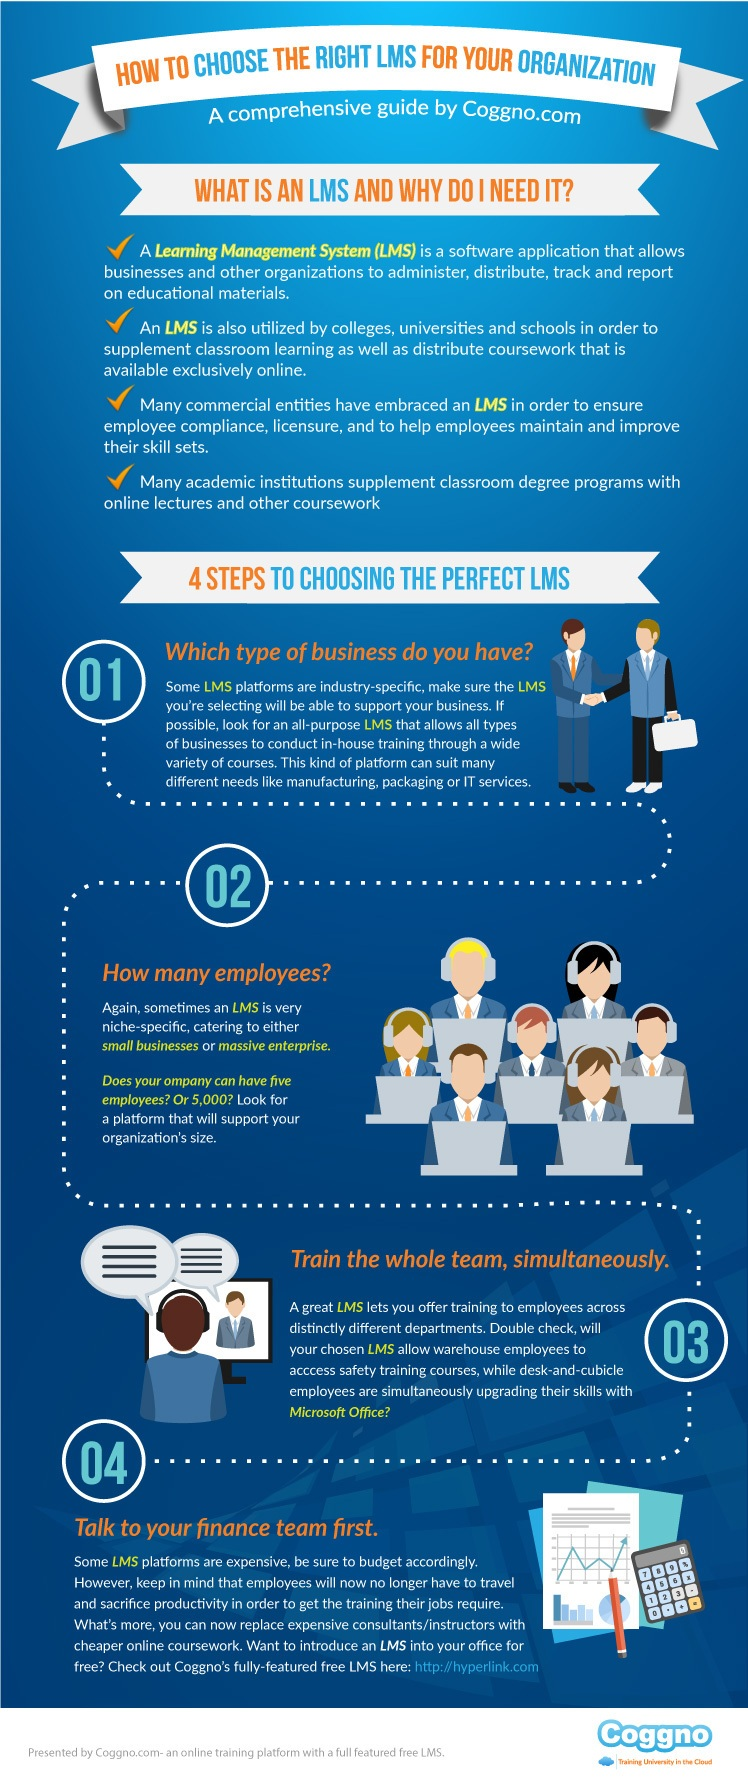 How to Choose the Right LMS for Your Organisation Infographic